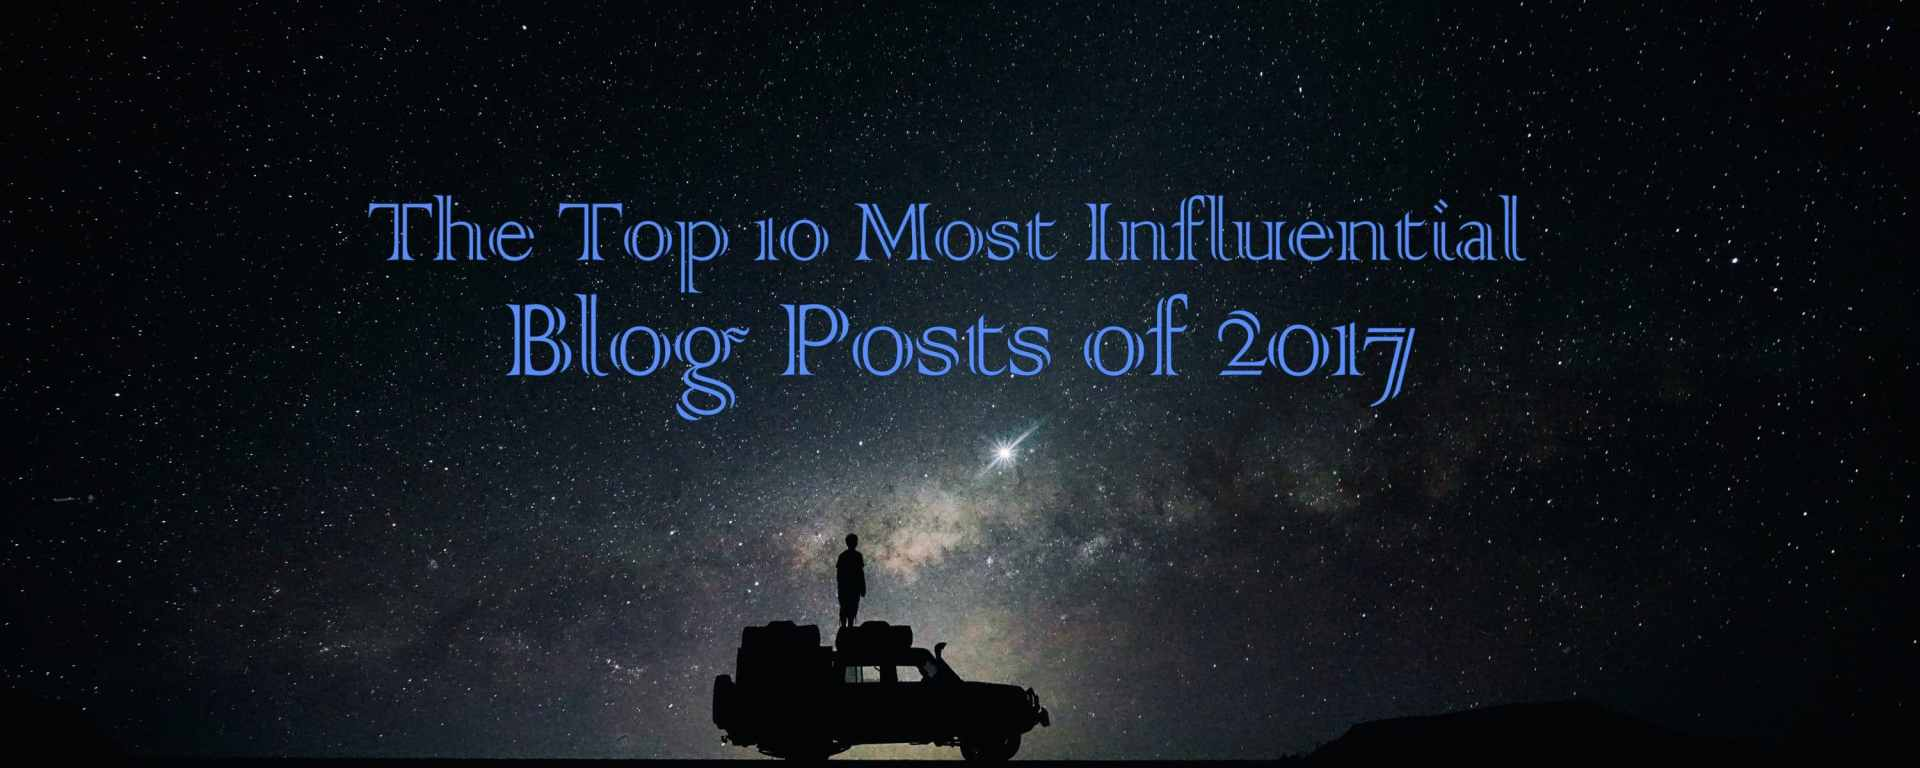 Top 10 Most Influential Blog Posts of 2017